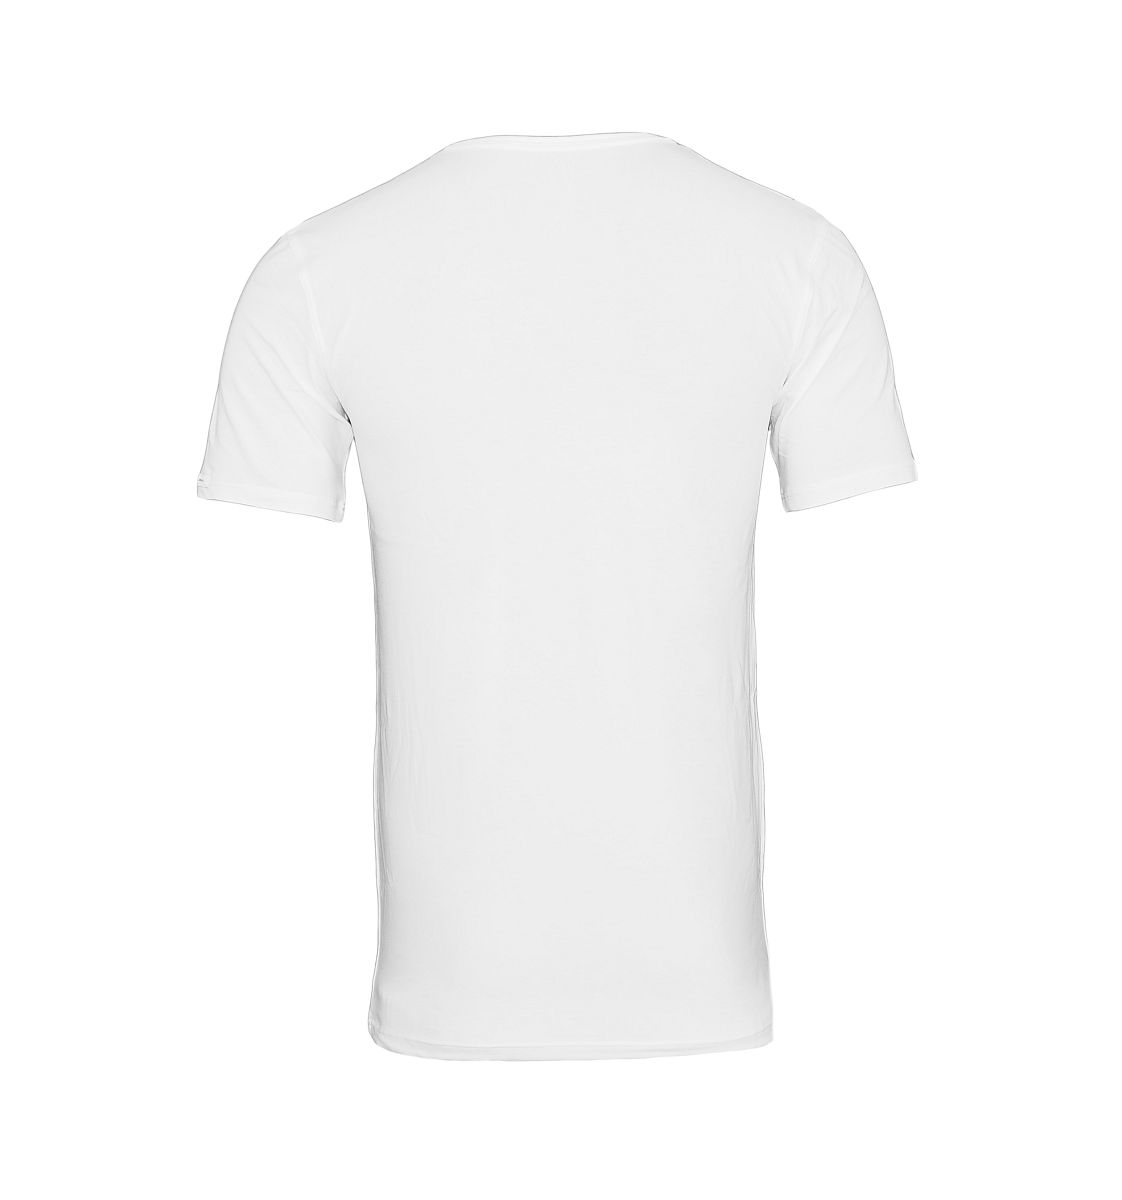 Baldessarini 2er Pack T-Shirts Kurzarm 90004 6061 1004 bright white W18-BST1